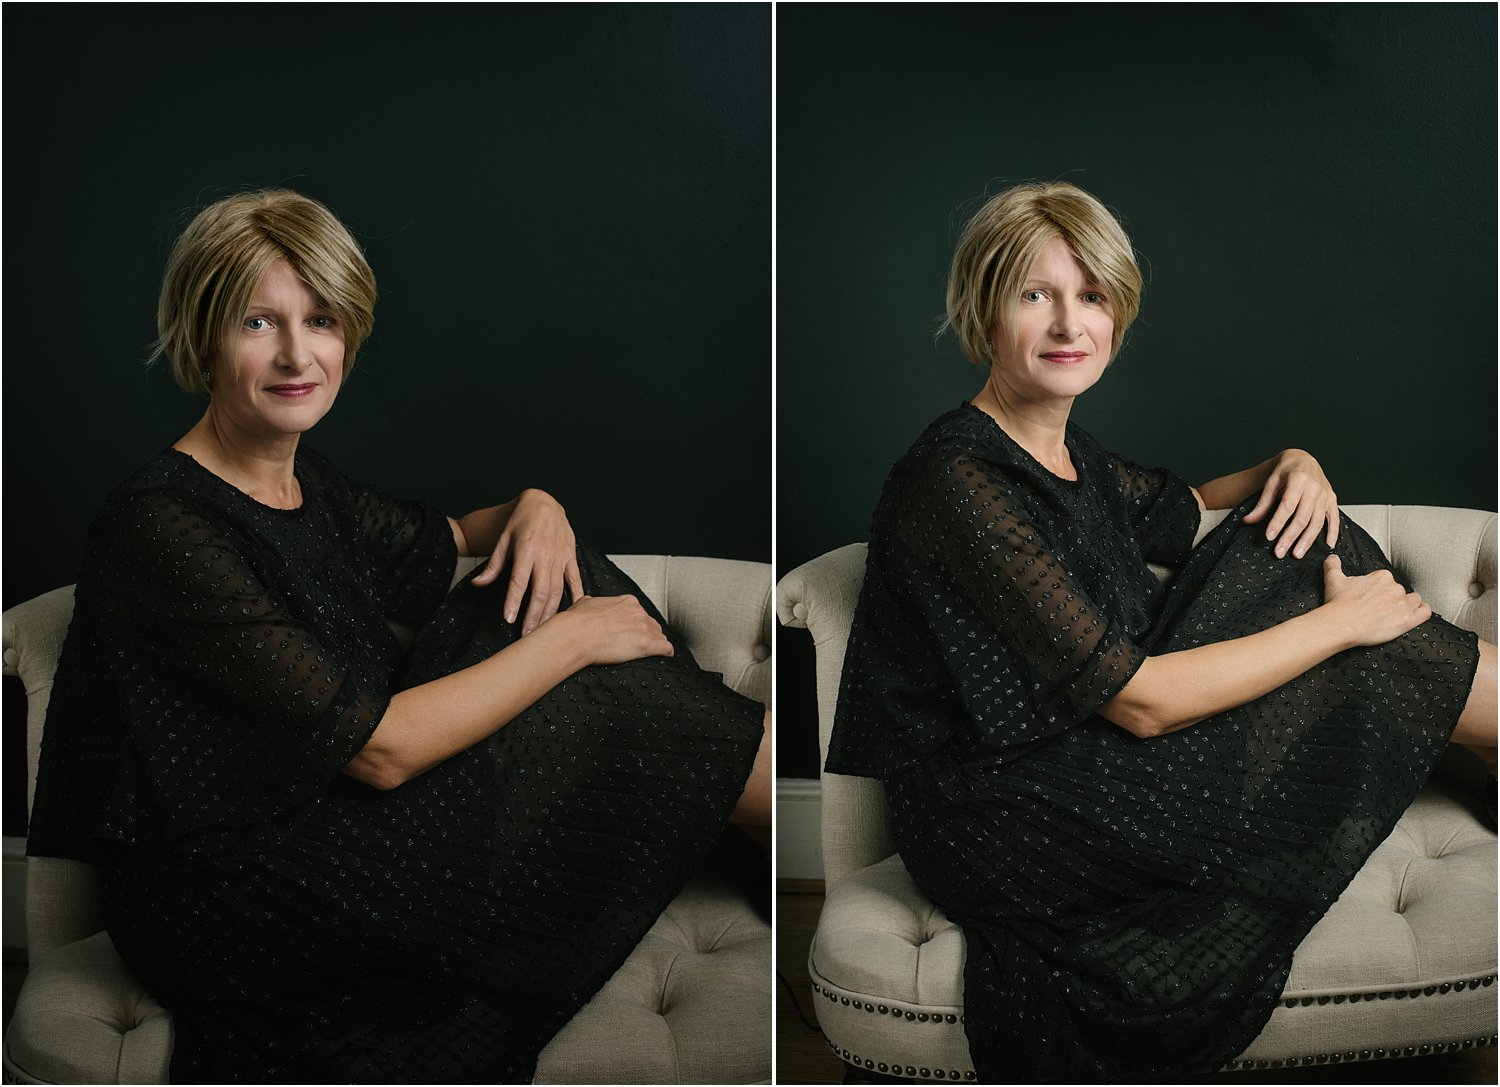 Side-by-side Comparisons of Basic Studio Light Modifiers 4